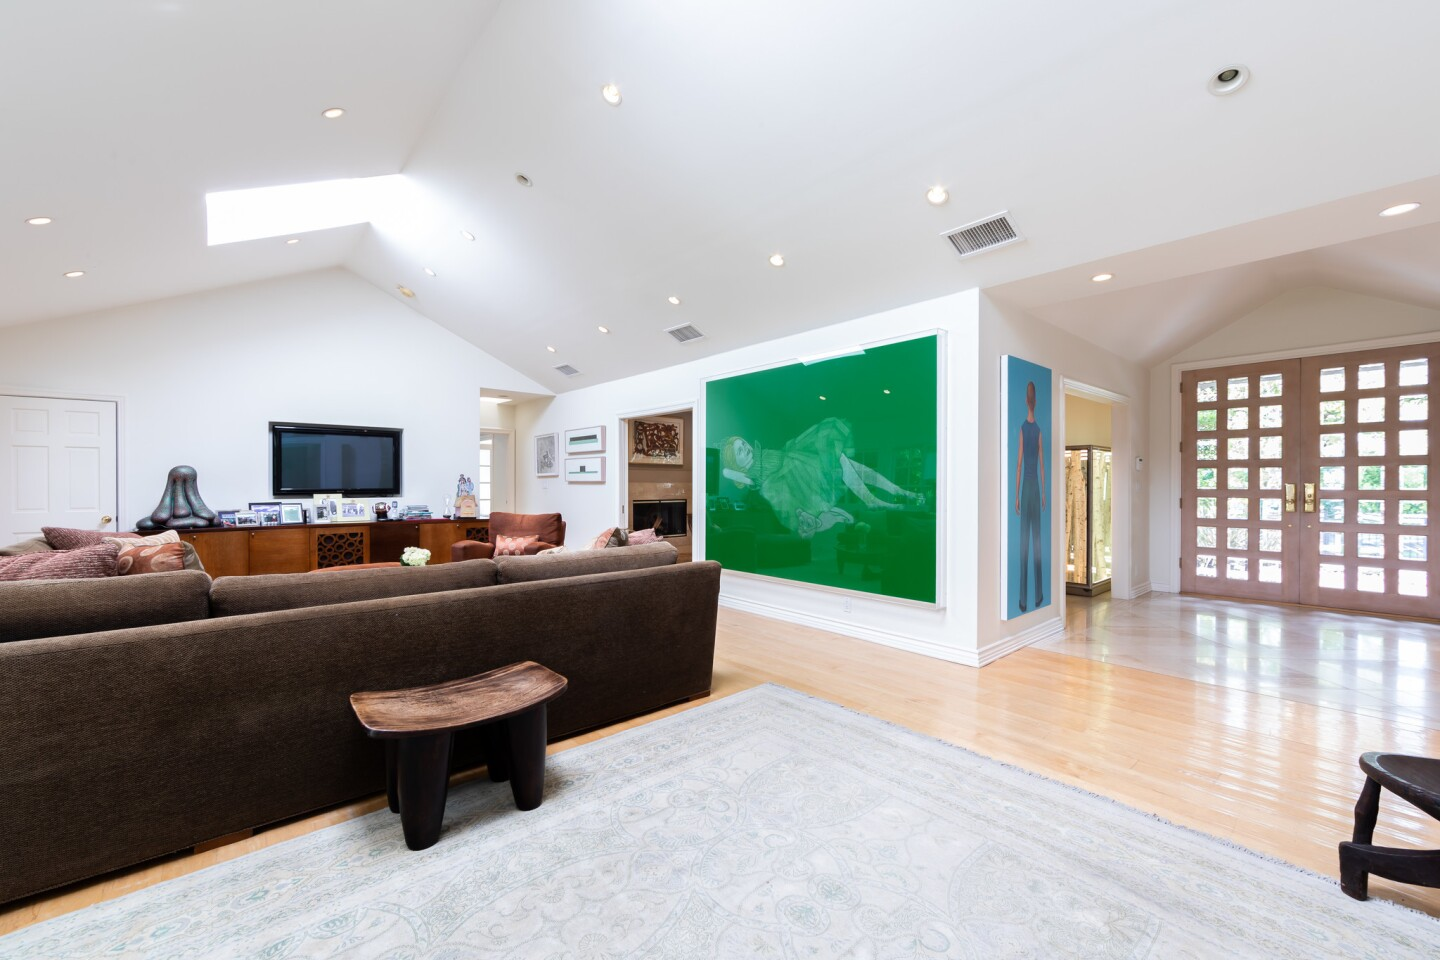 Russell Metty's onetime home | Hot Property